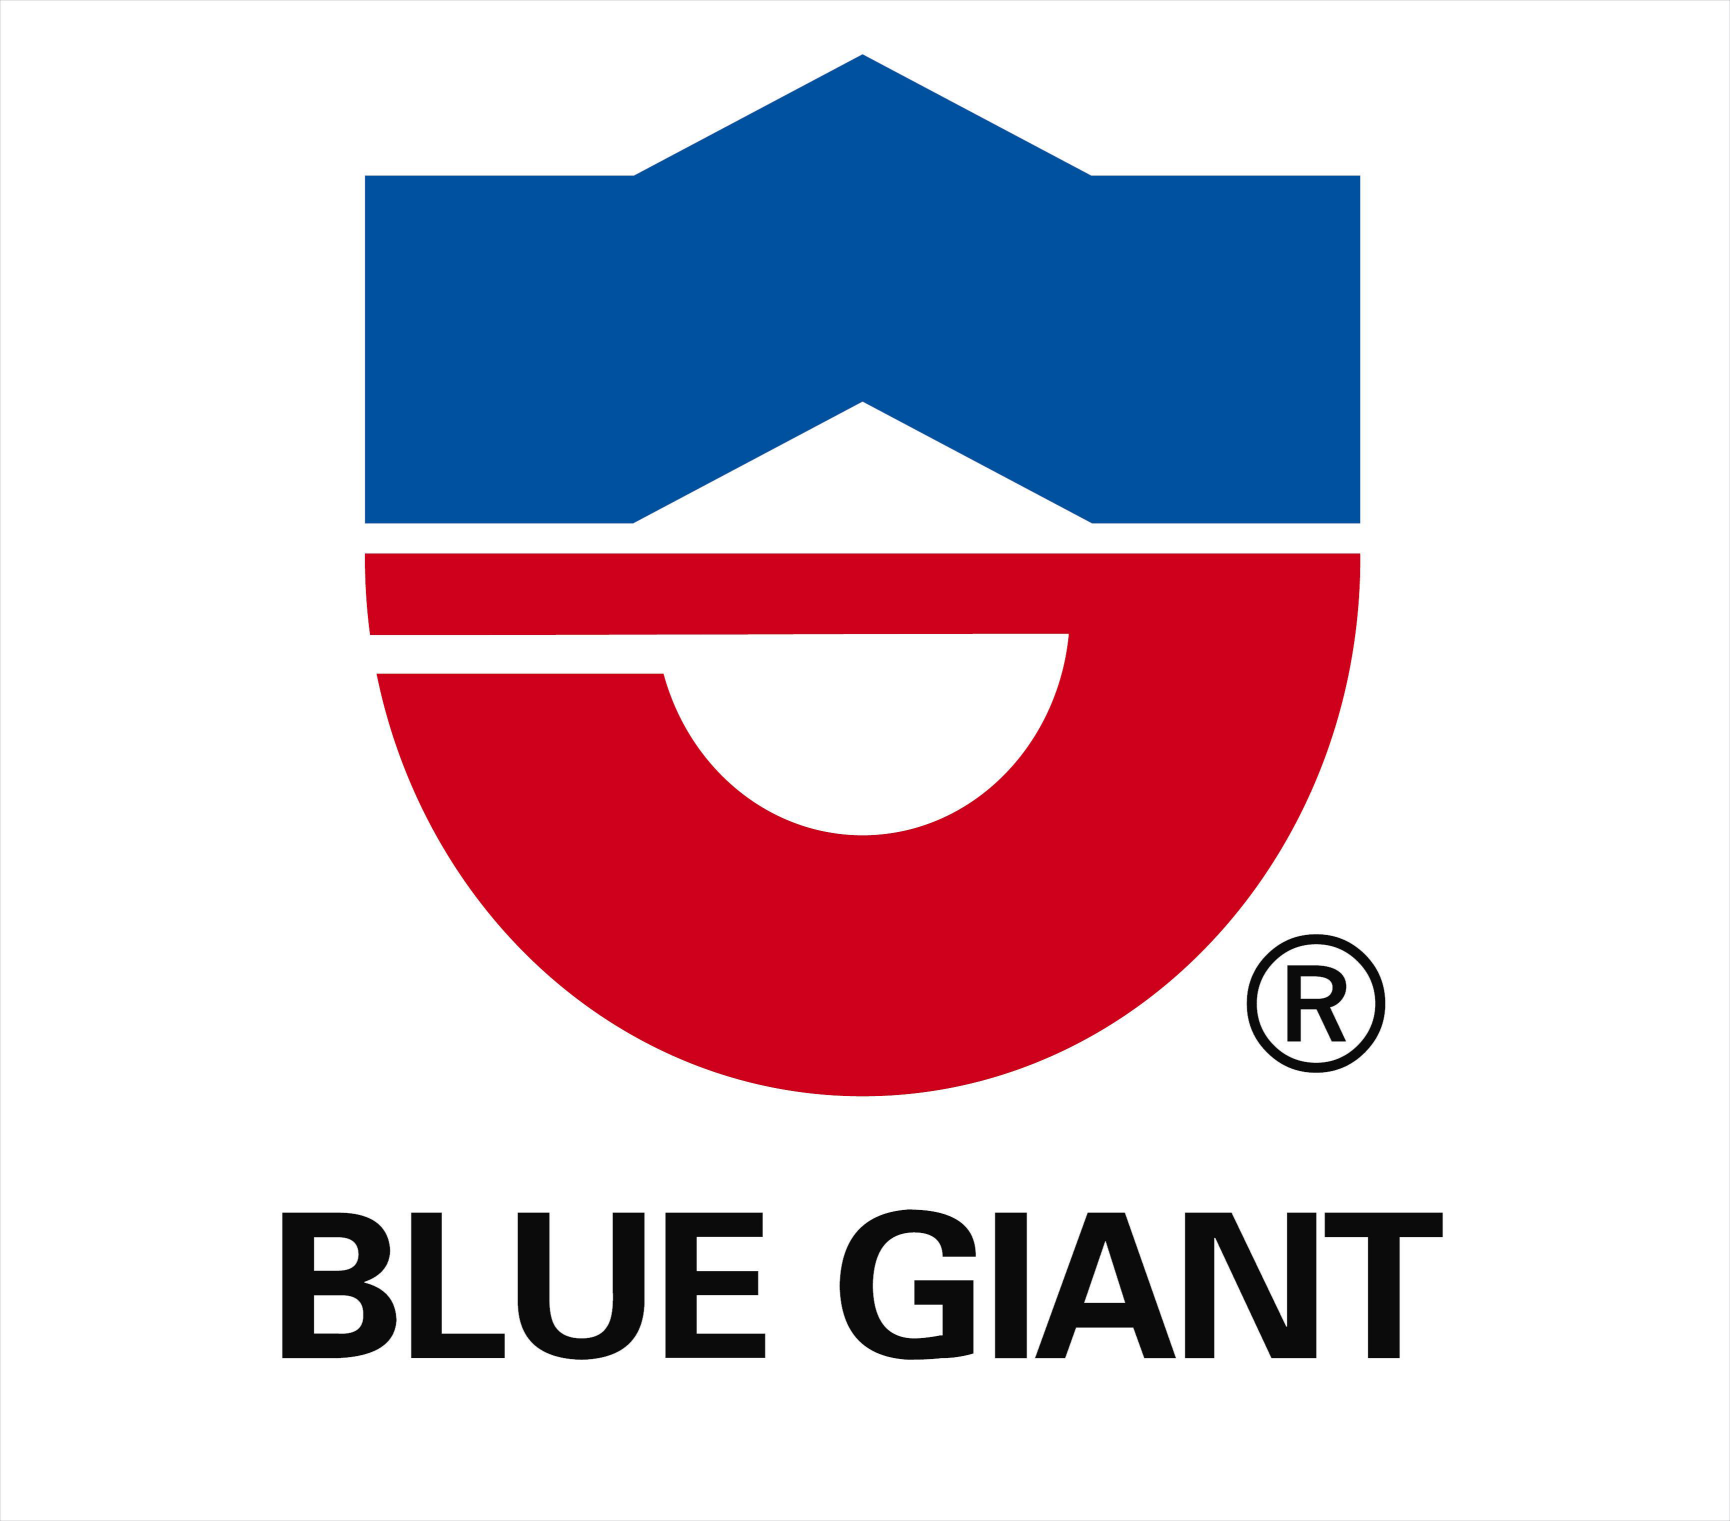 BLUE GIANT (SHANGHAI), INC.